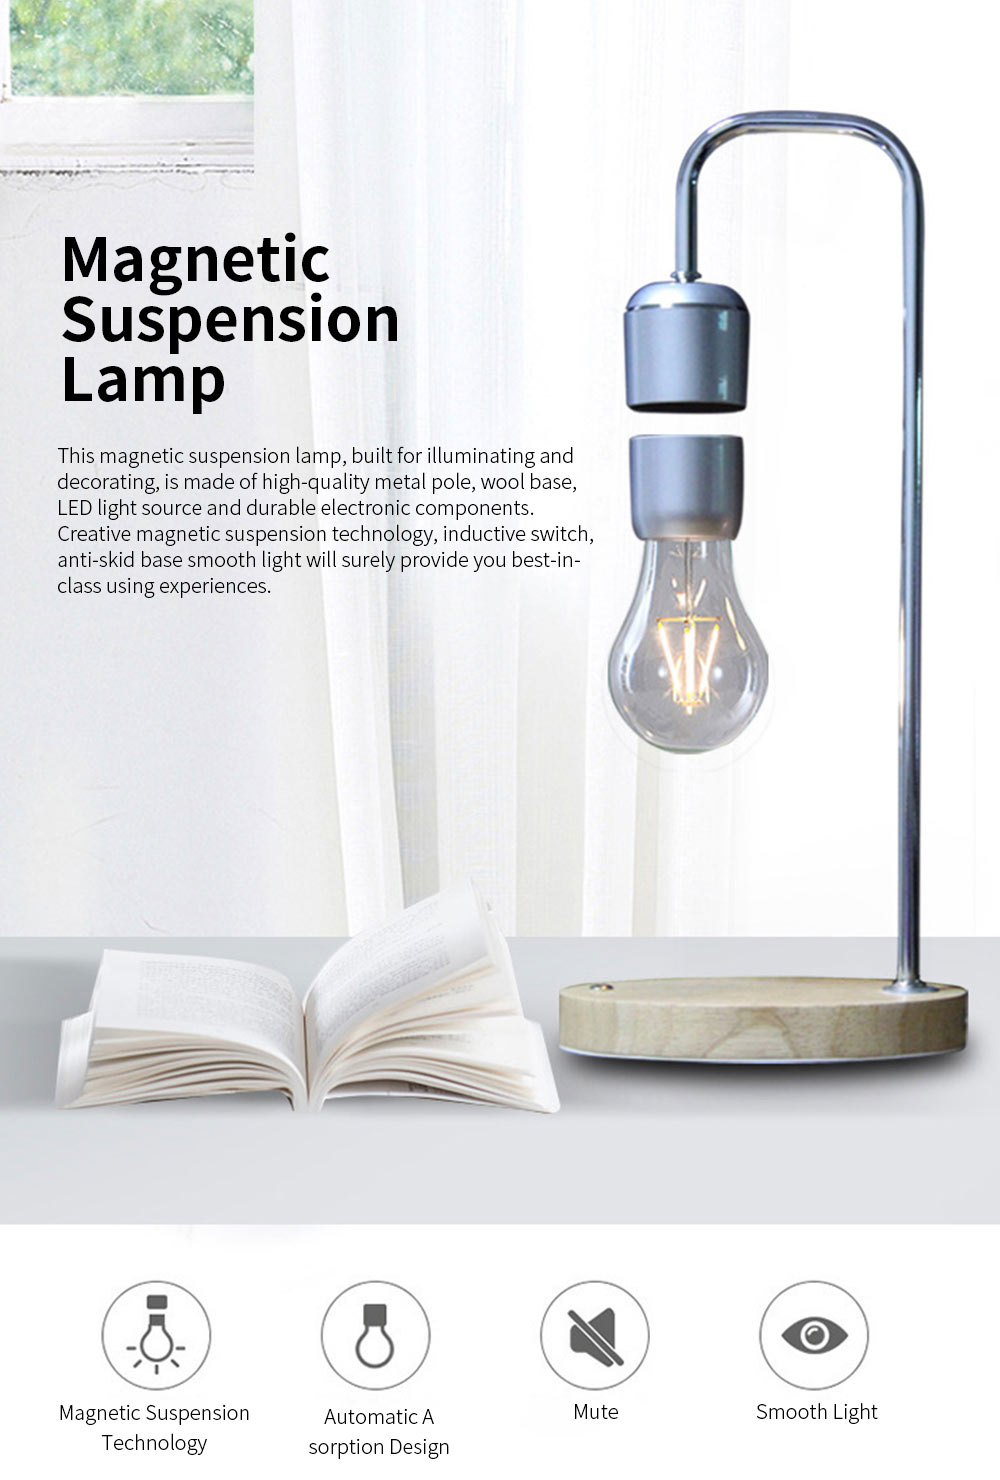 Creative Stylish Energy-conservation Mute Magnetic Suspension Light Table Lamp with Inductive Switch Anti-skid Base 0